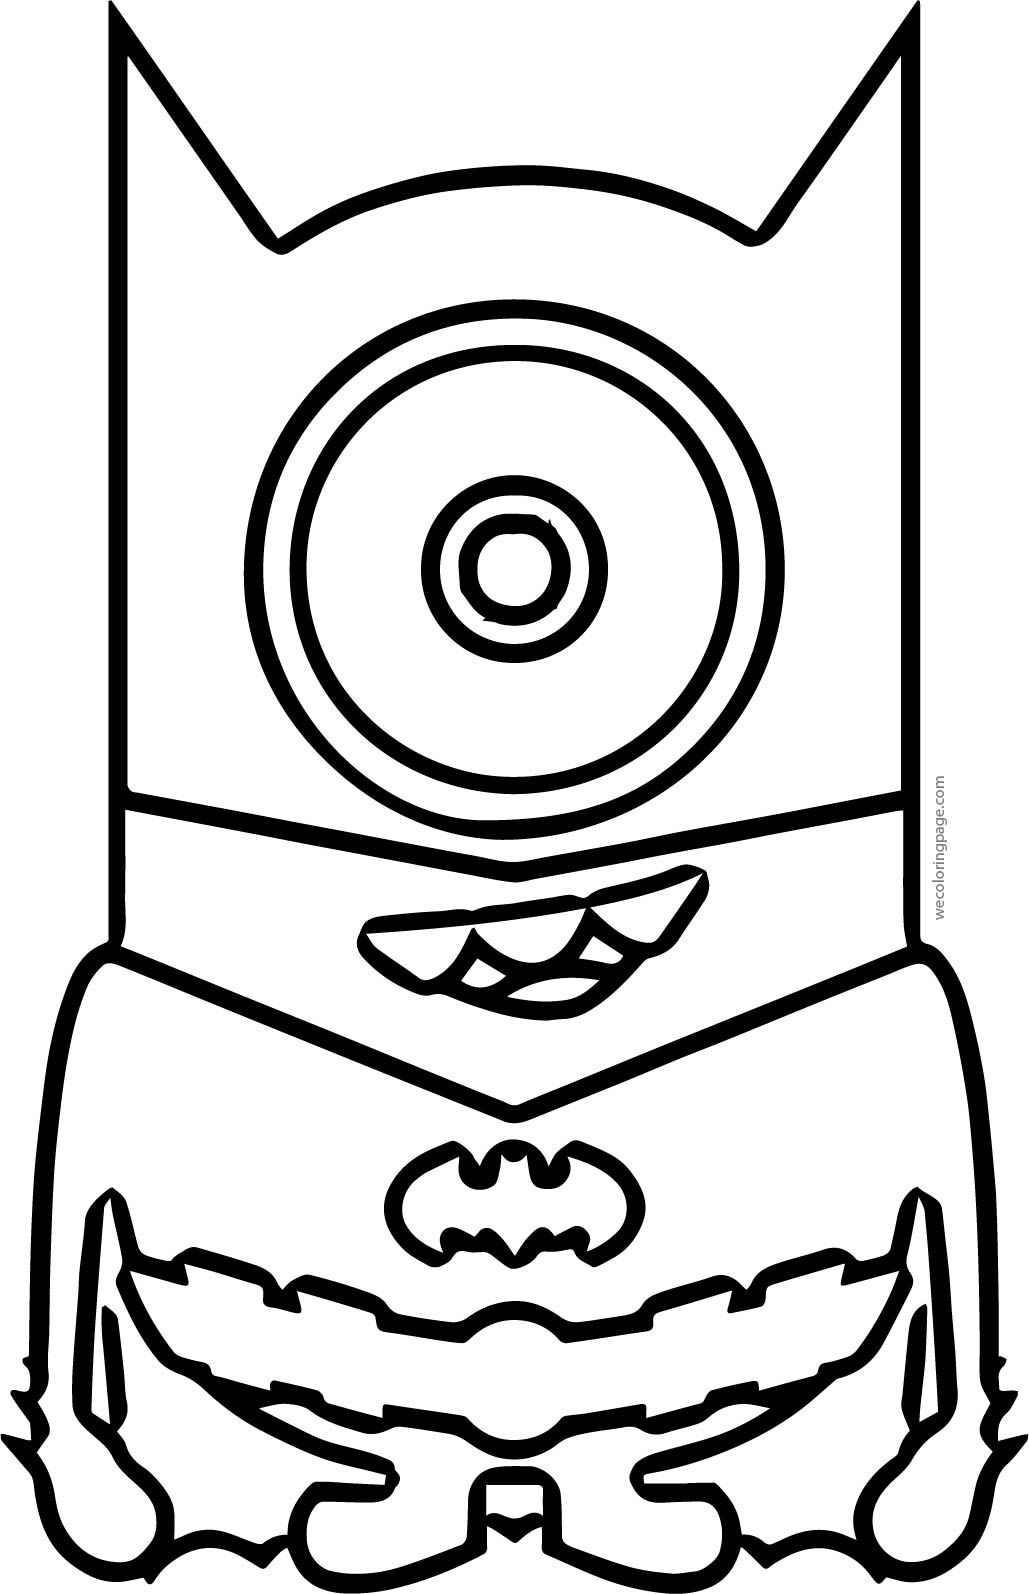 Funny Batman Minion Coloring Page Wecoloringpage Com Minions Coloring Pages Minion Coloring Pages Snoopy Coloring Pages